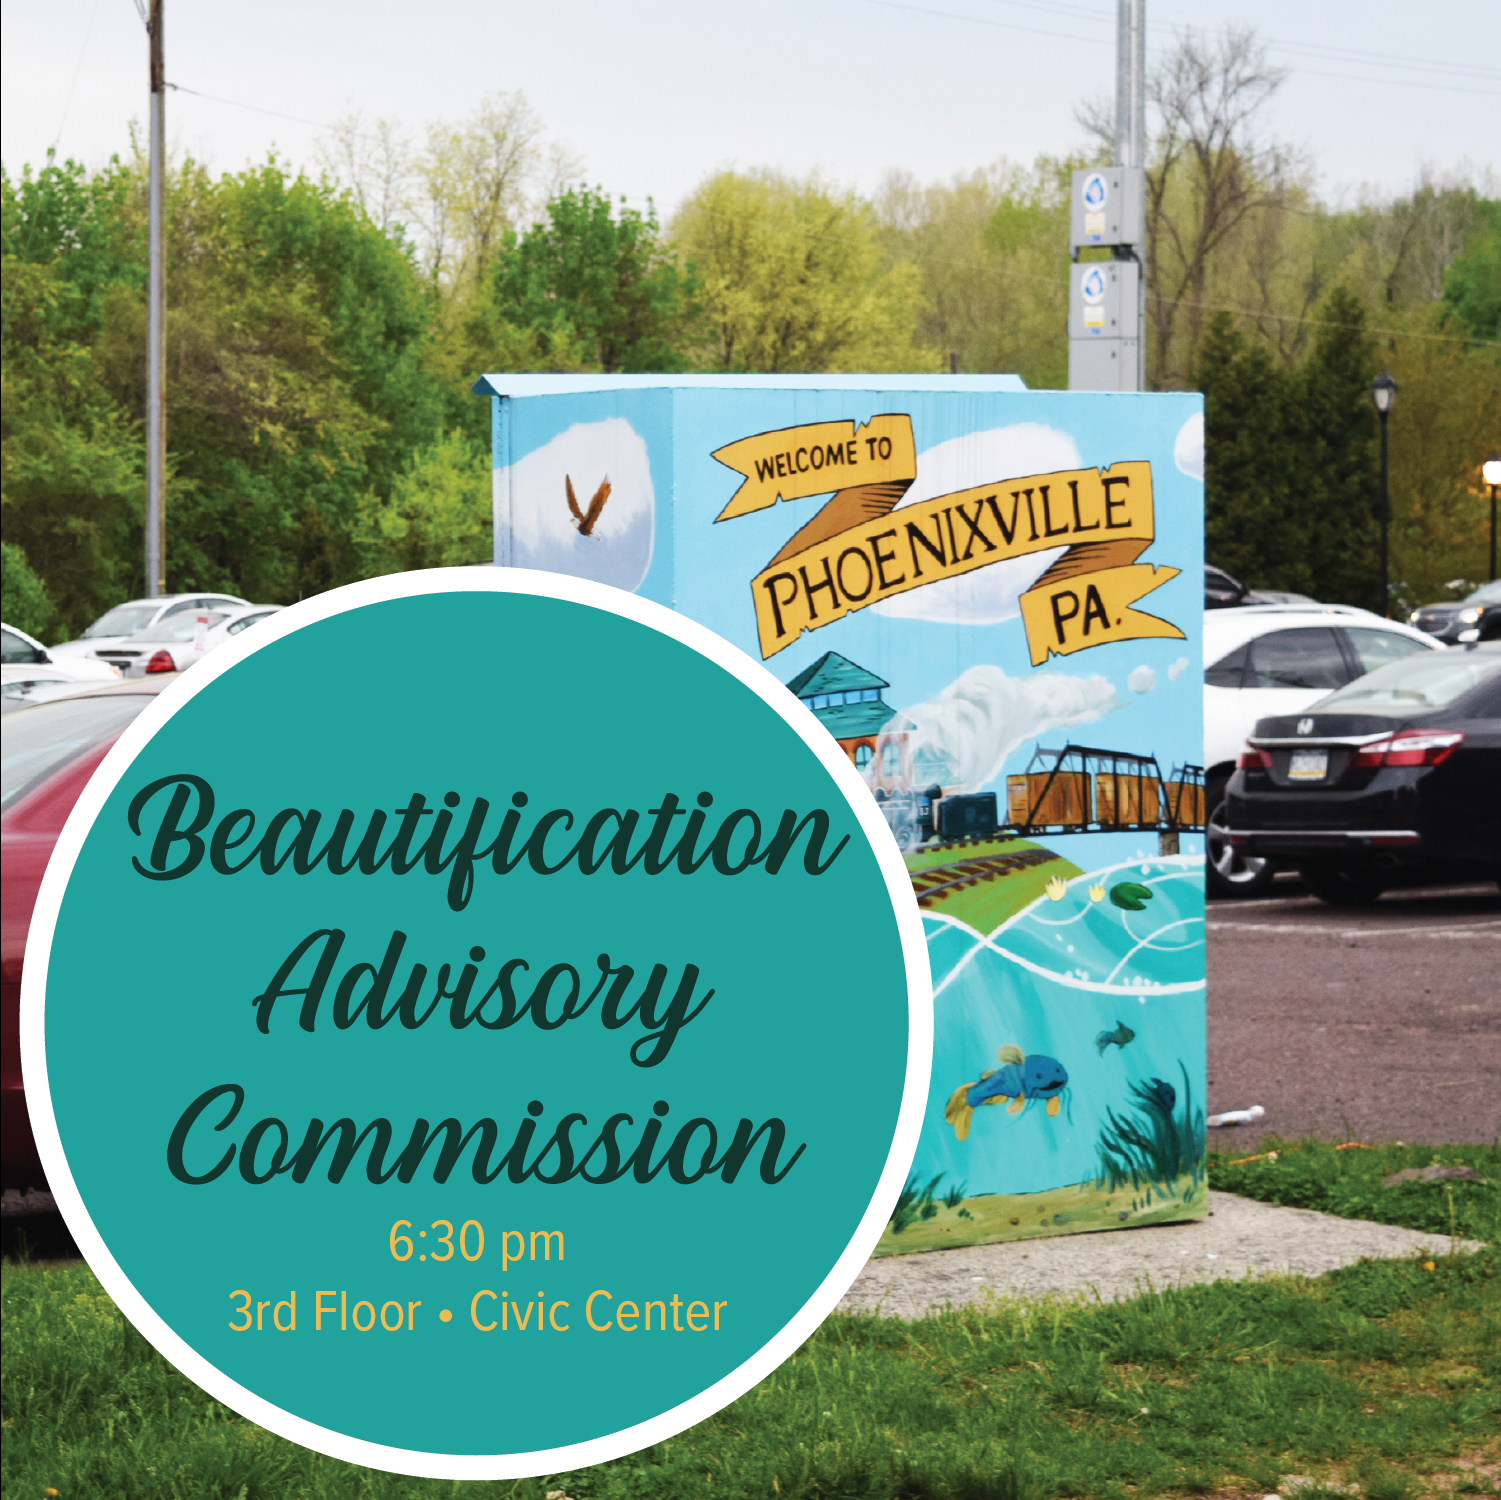 Beautification Advisory Commission Meeting